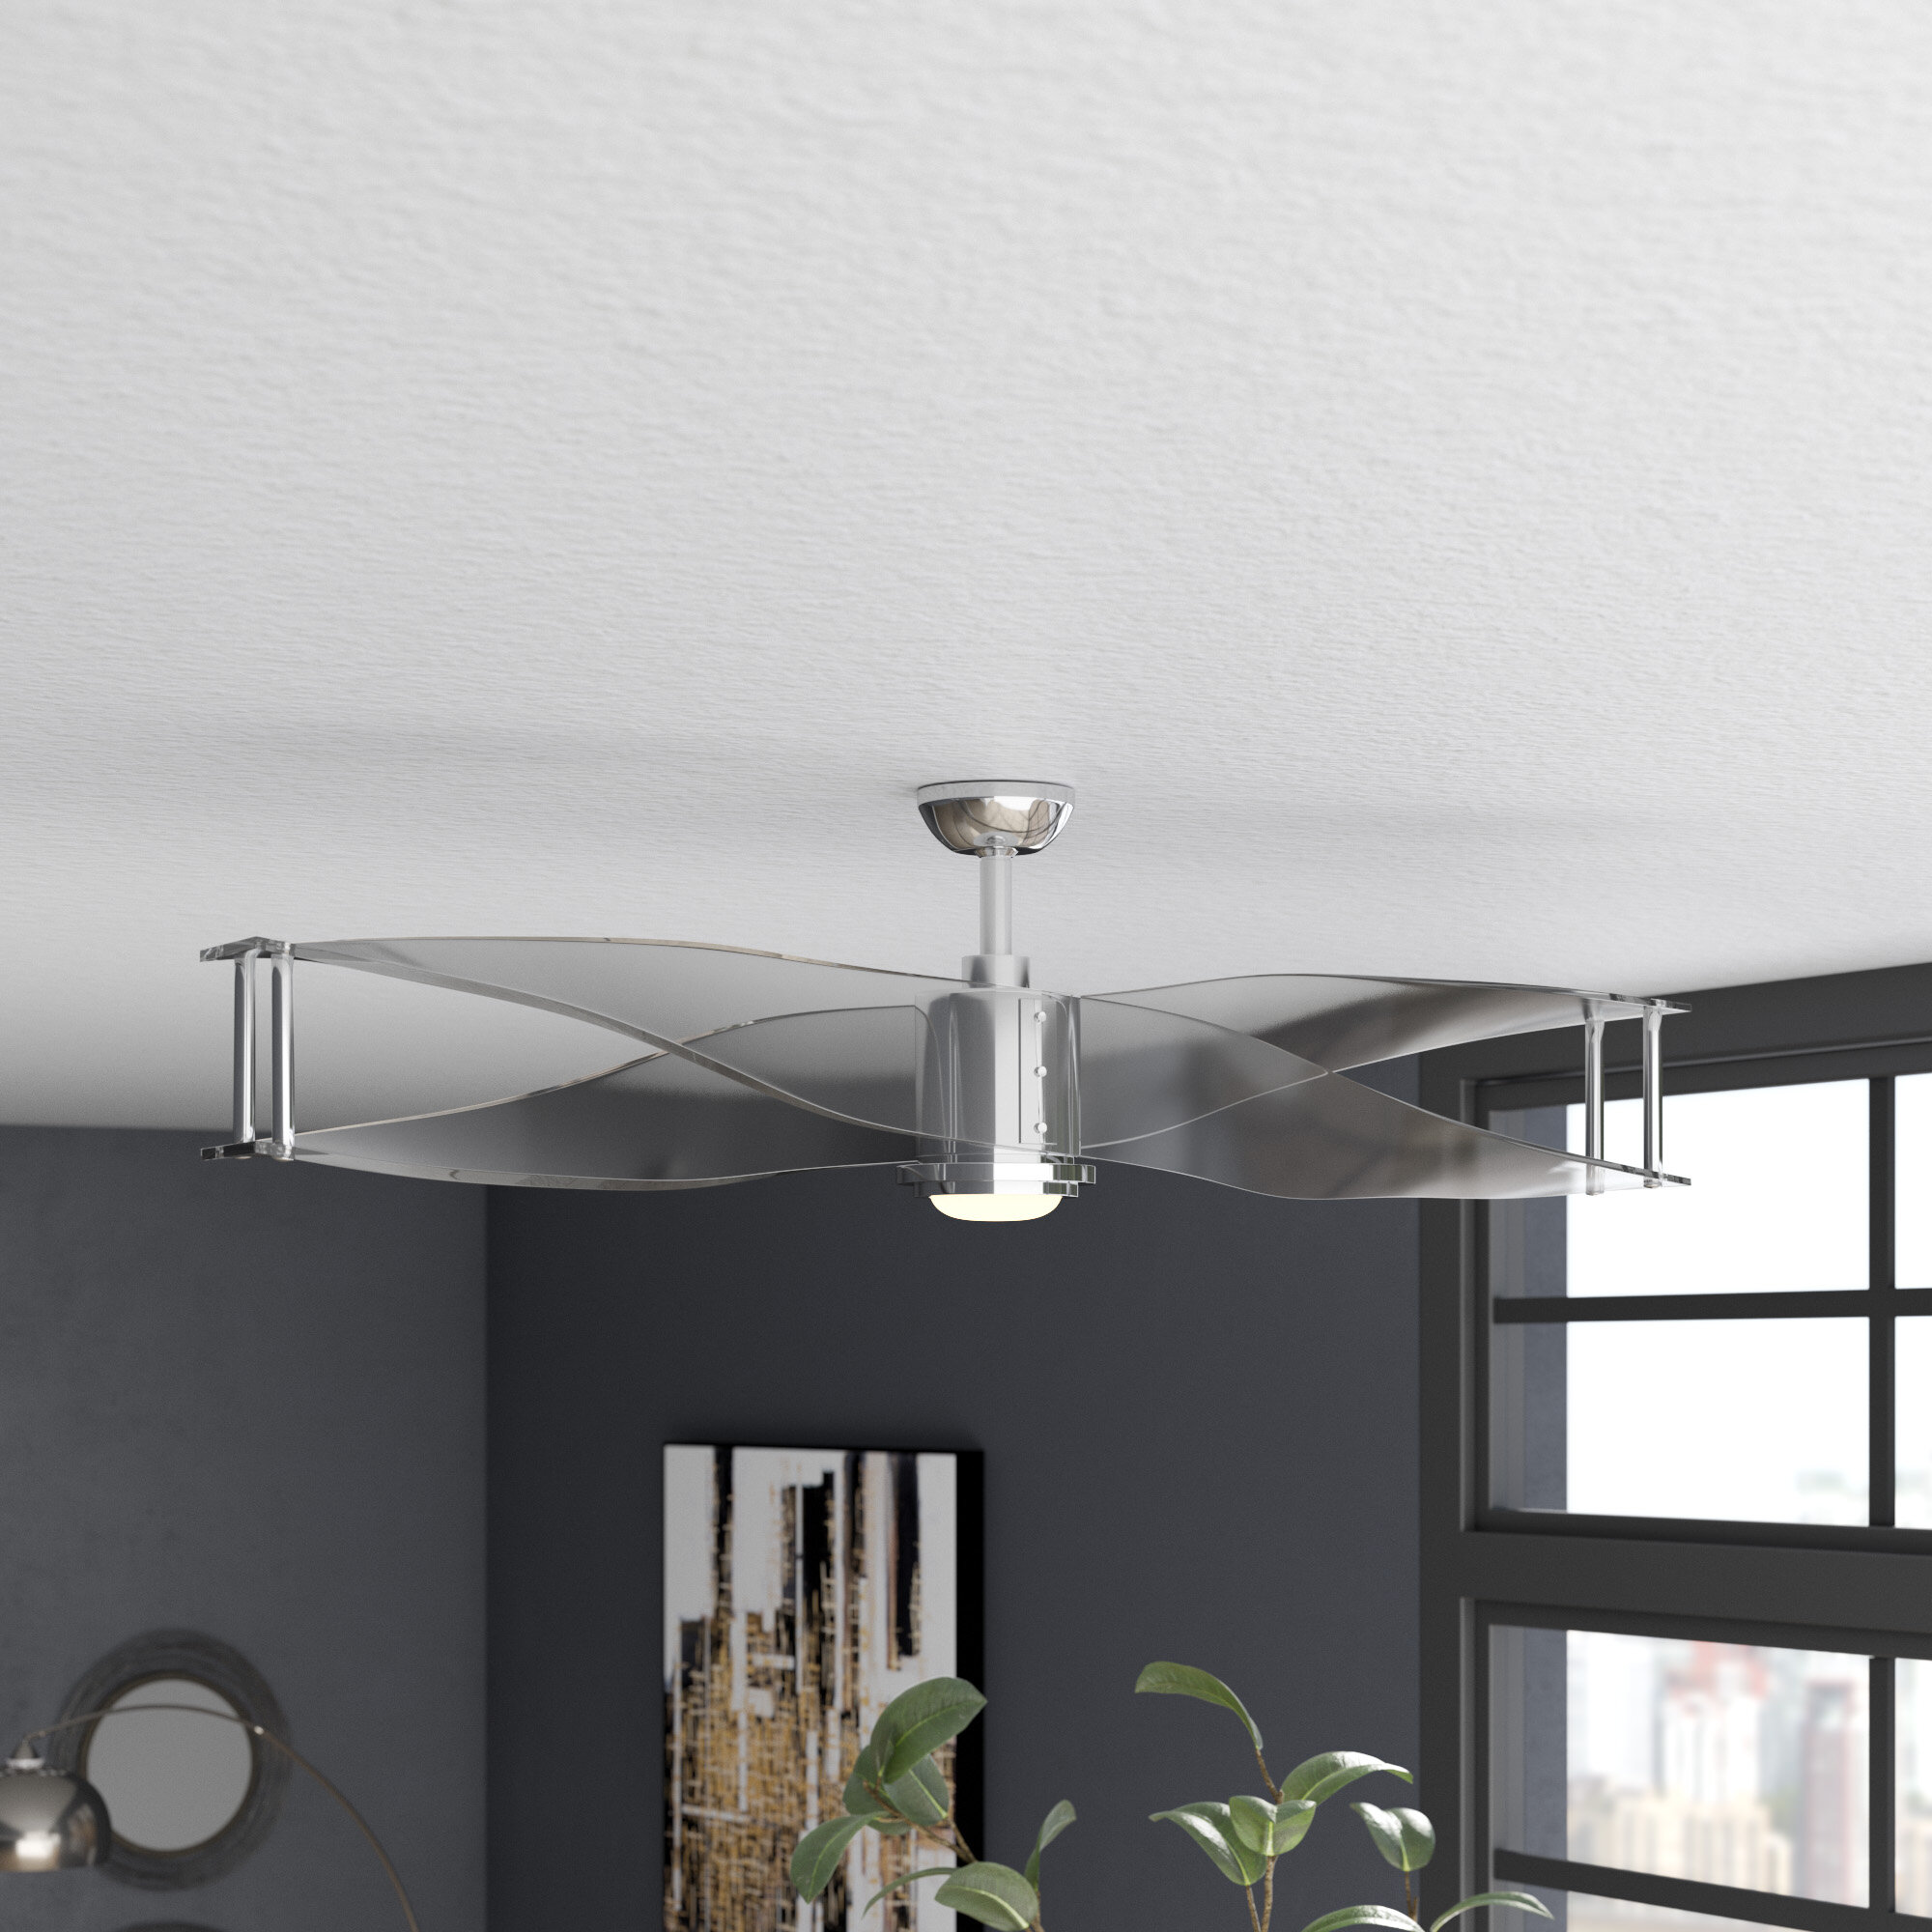 Wade Logan 56 Penbrook 2 Blade Led Flush Mount Ceiling Fan With Remote Control And Light Kit Included Reviews Wayfair